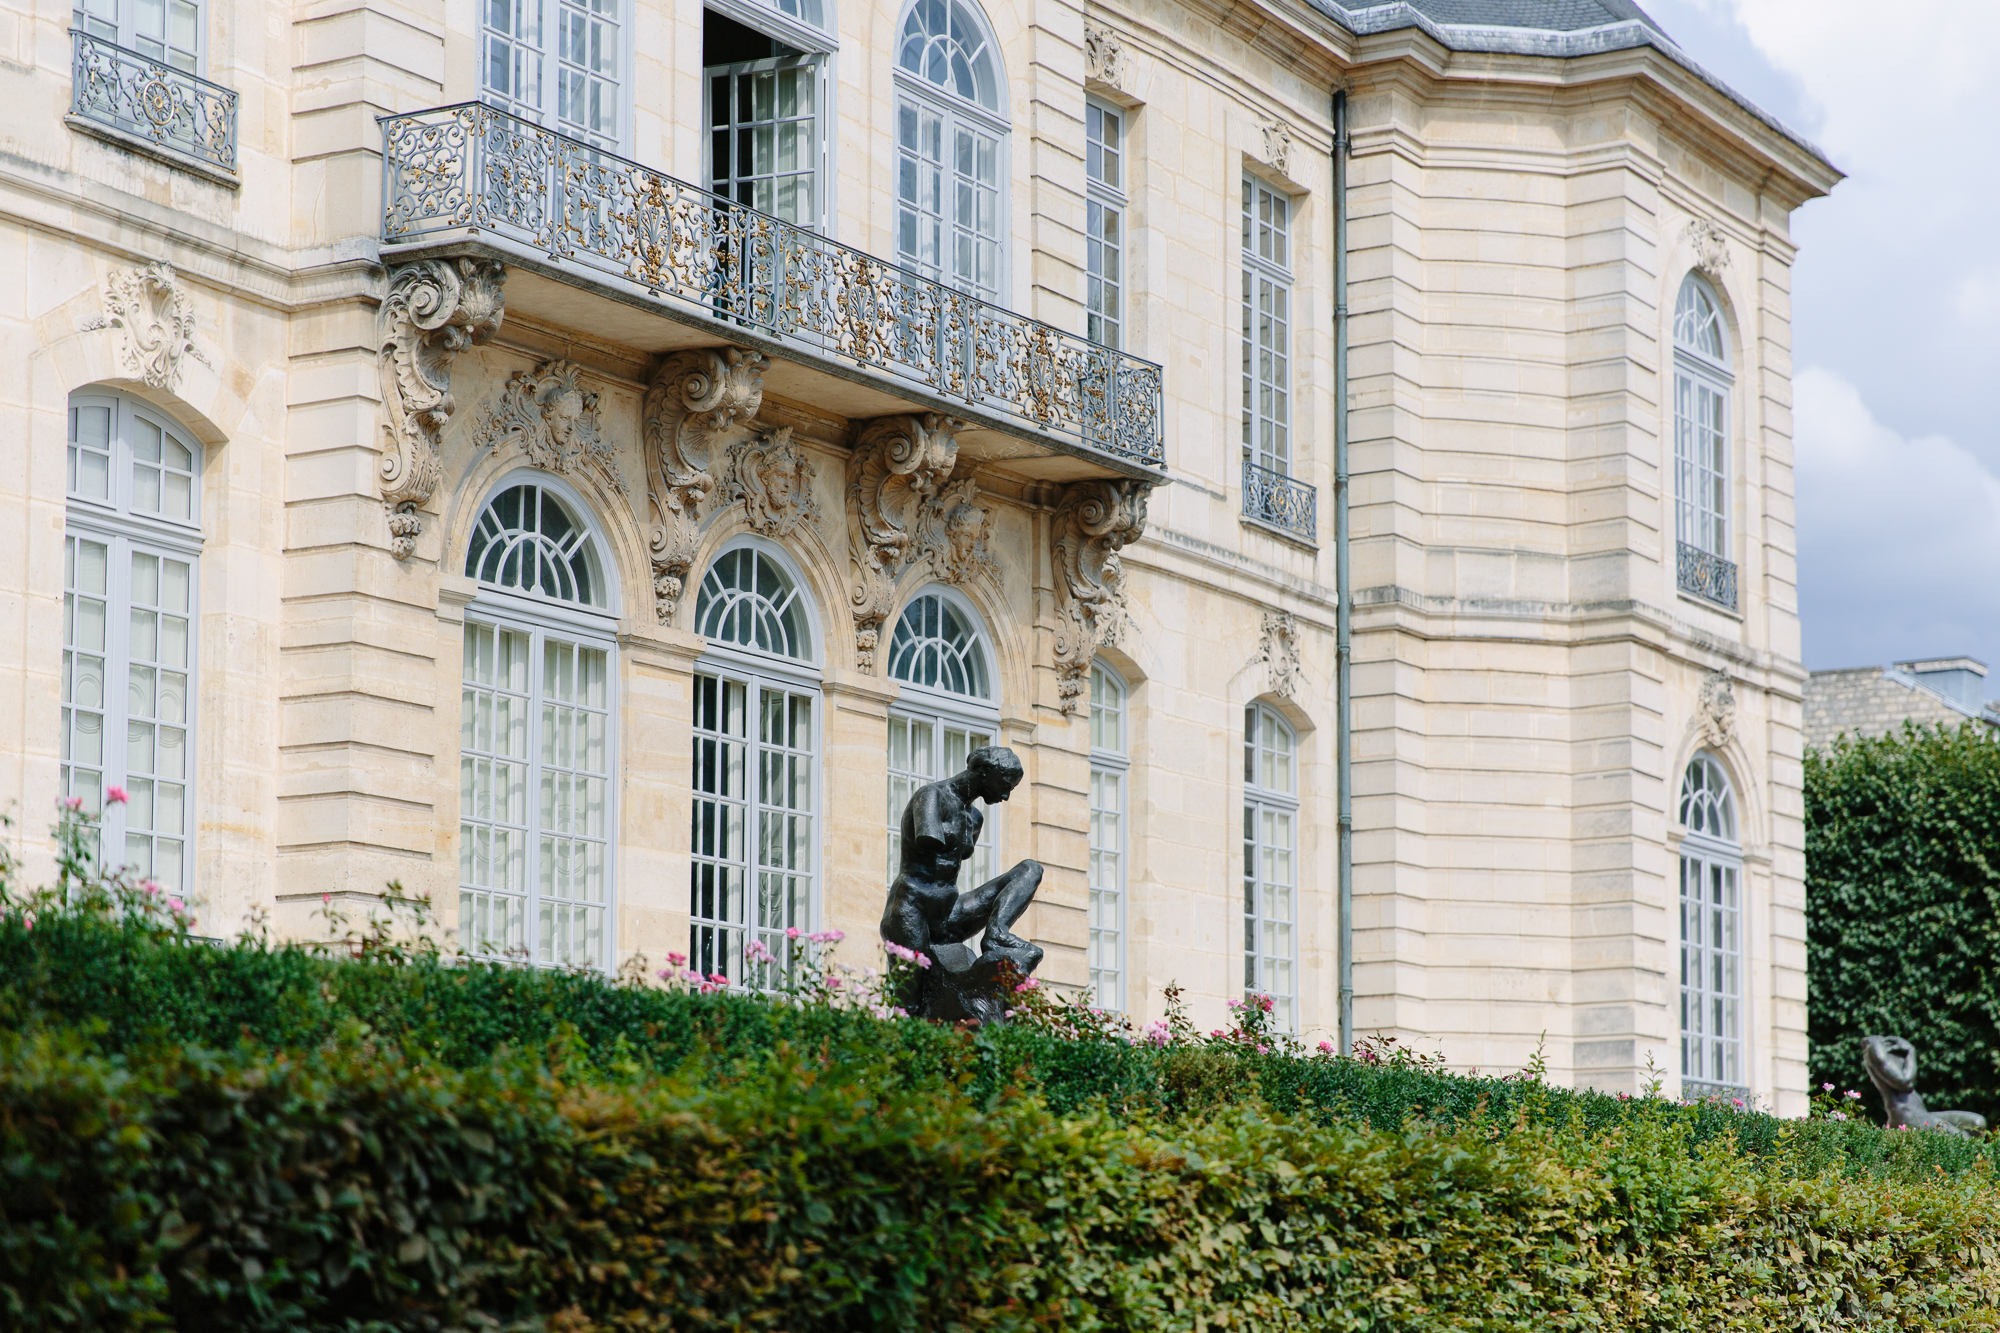 exterior of Musee Rodin in Paris